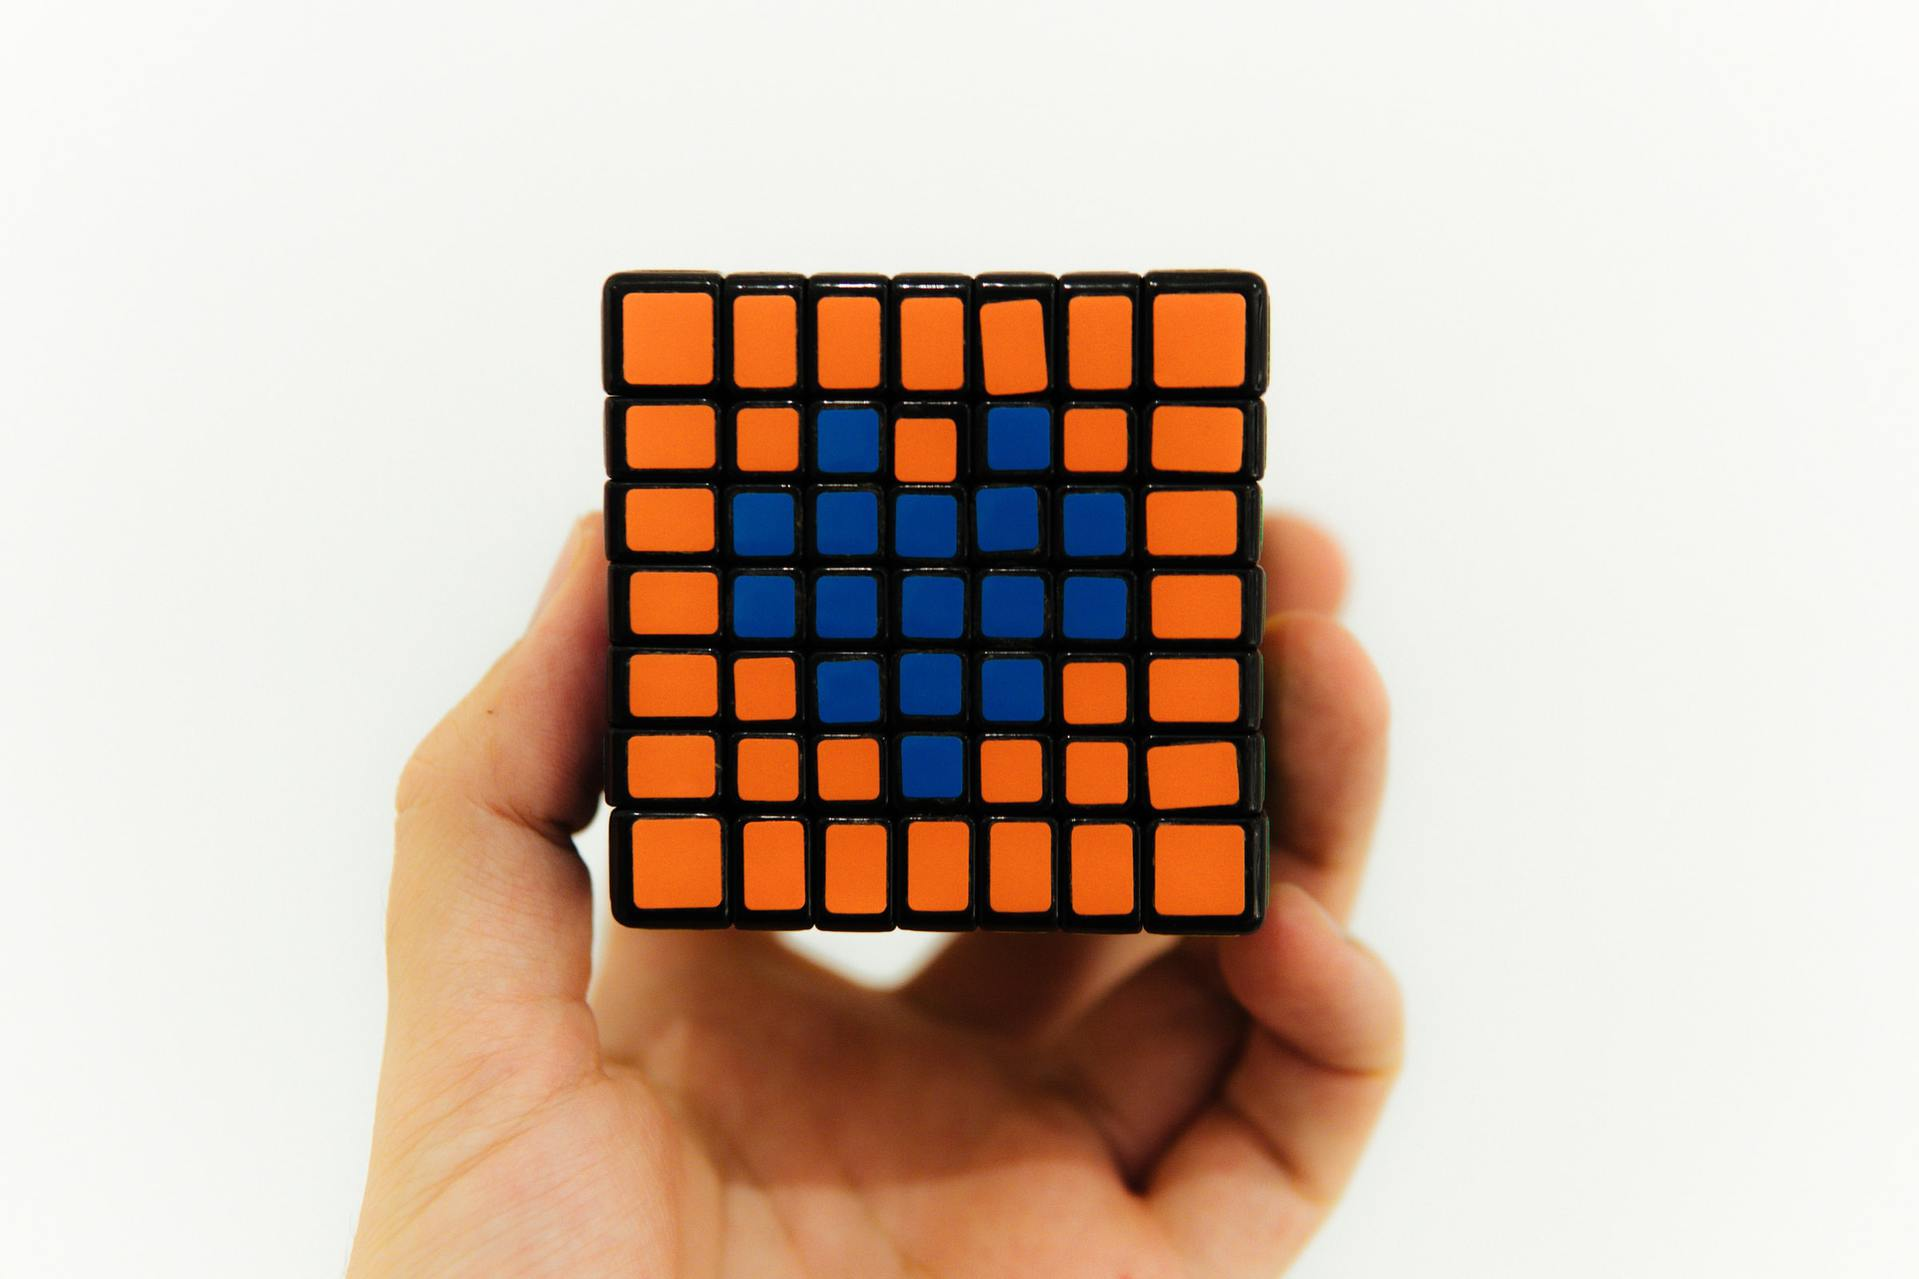 How to solve a Rubik's Cube: 9 steps